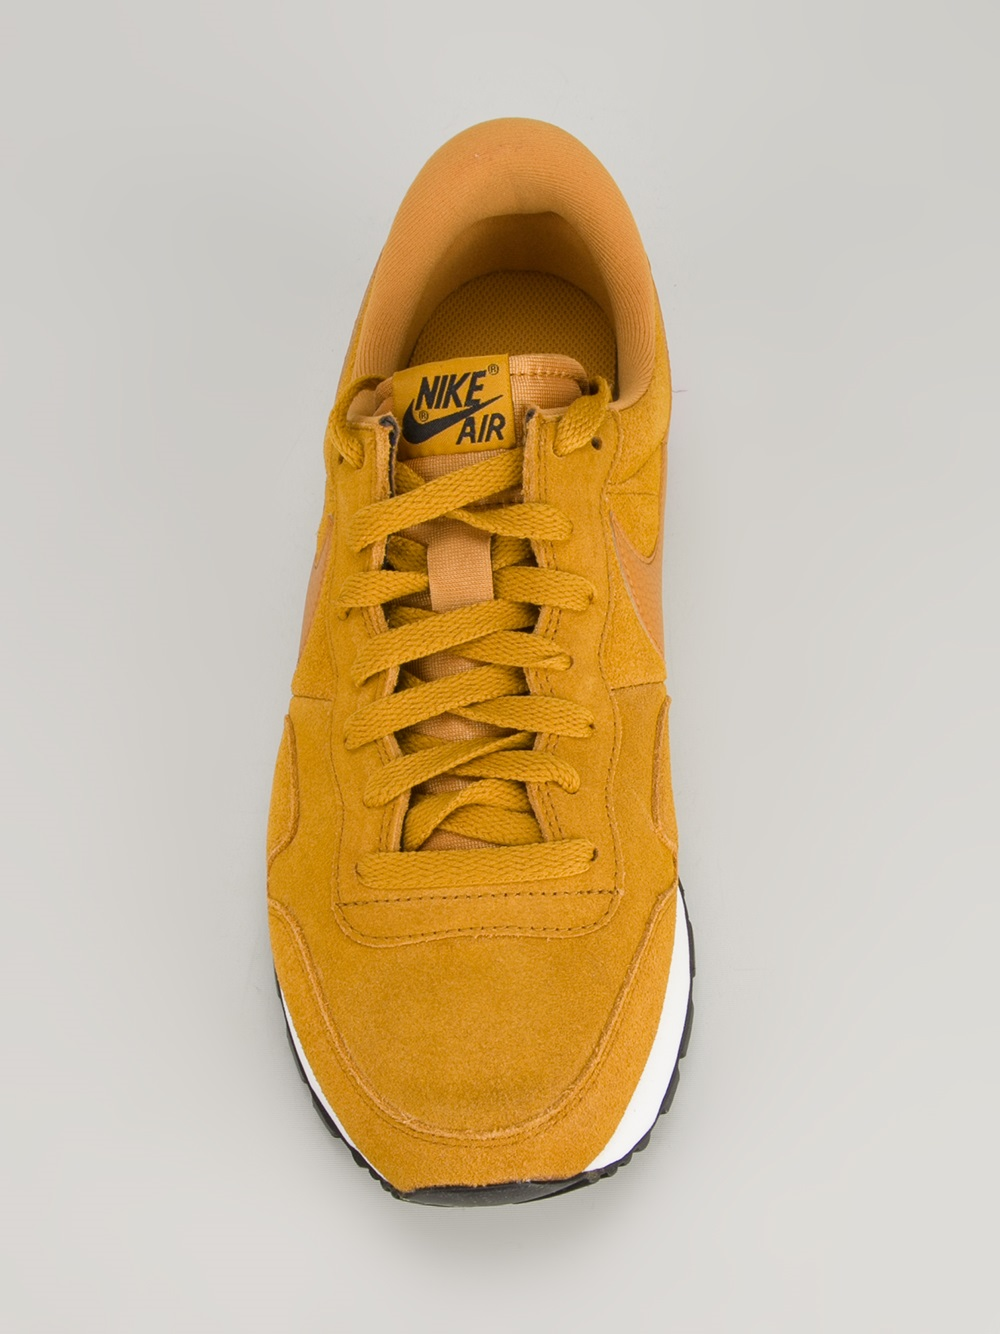 af6053e14dca7 Lyst - Nike Air Pegasus 83 Suede Trainer in Yellow for Men